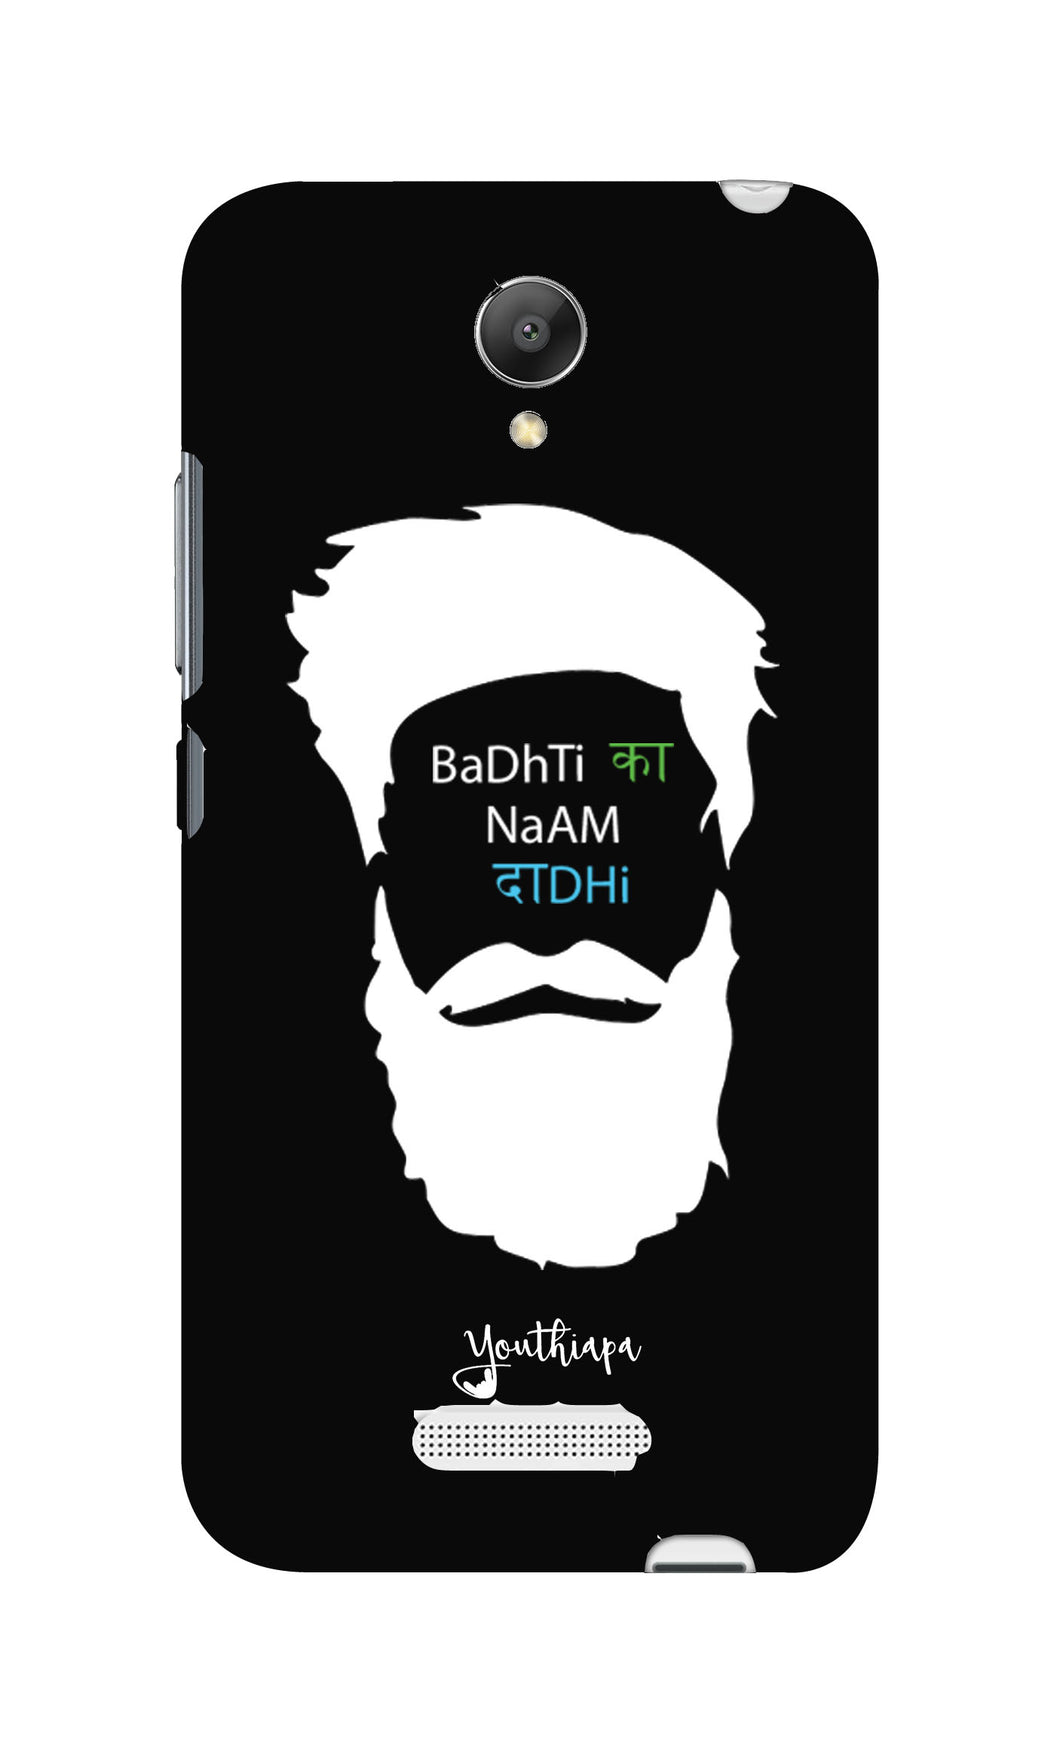 The Beard Edition for REDMI NOTE 2